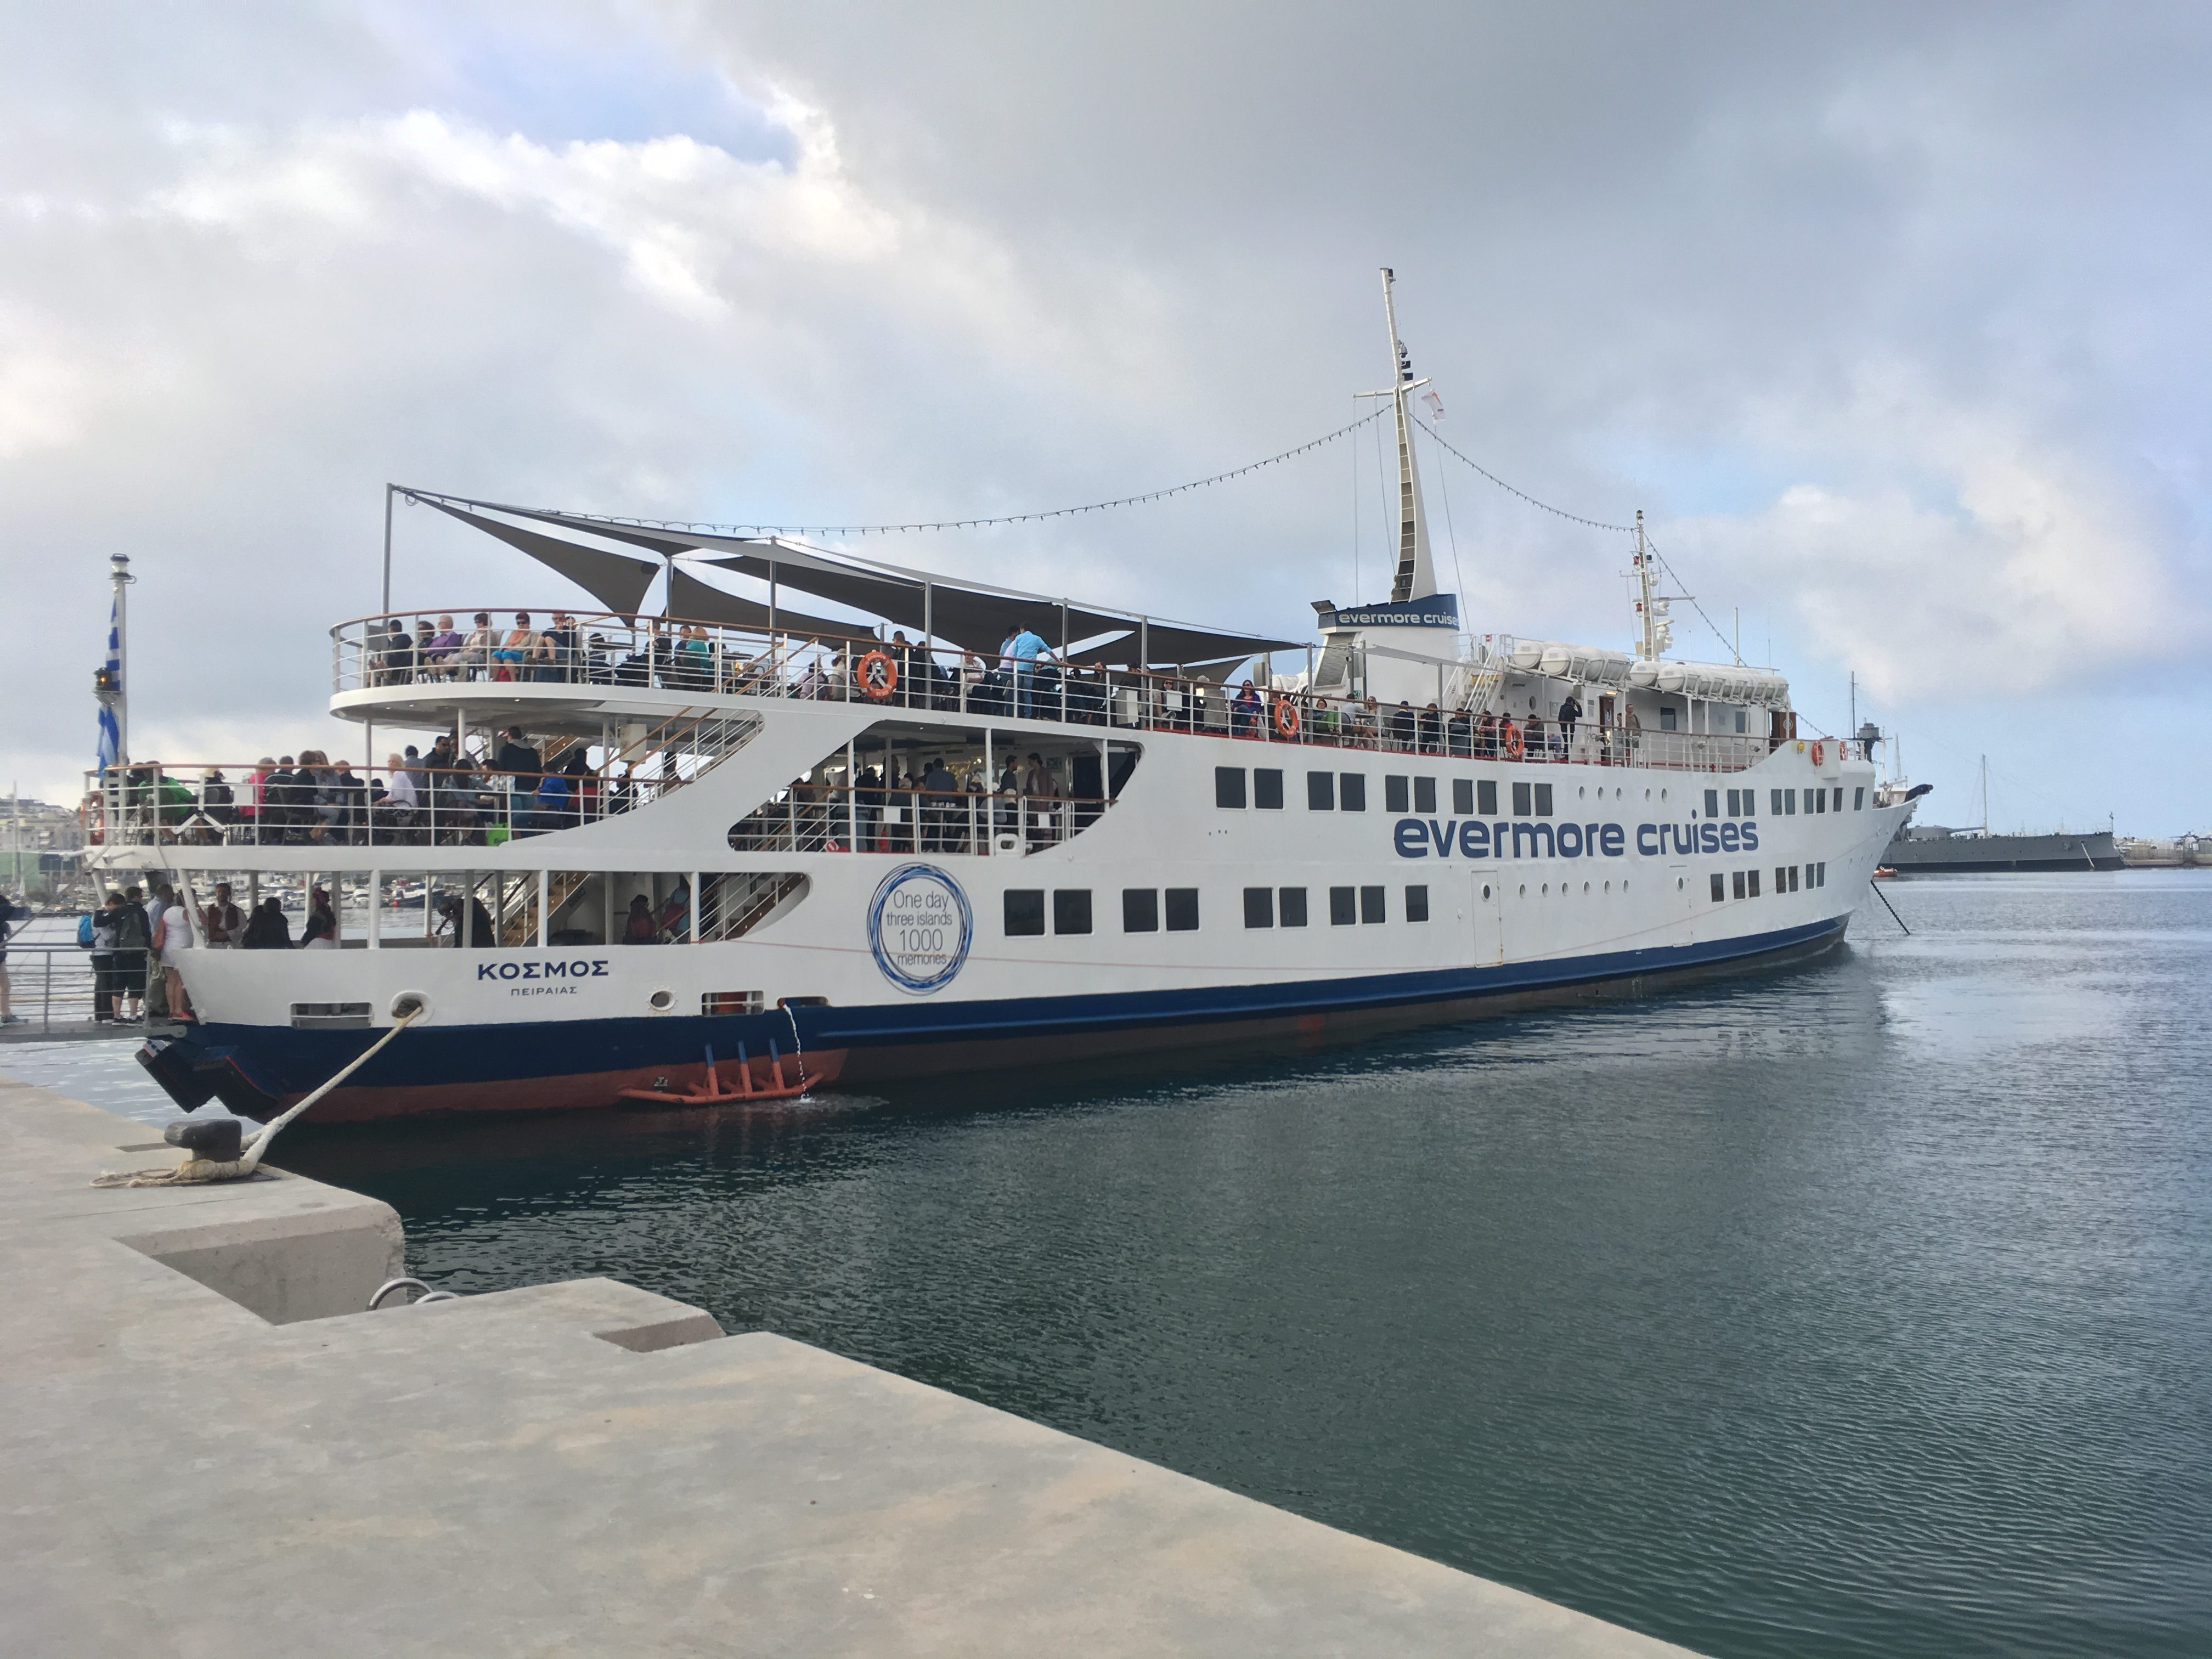 The ship we took to cruise 3 Greek Islands